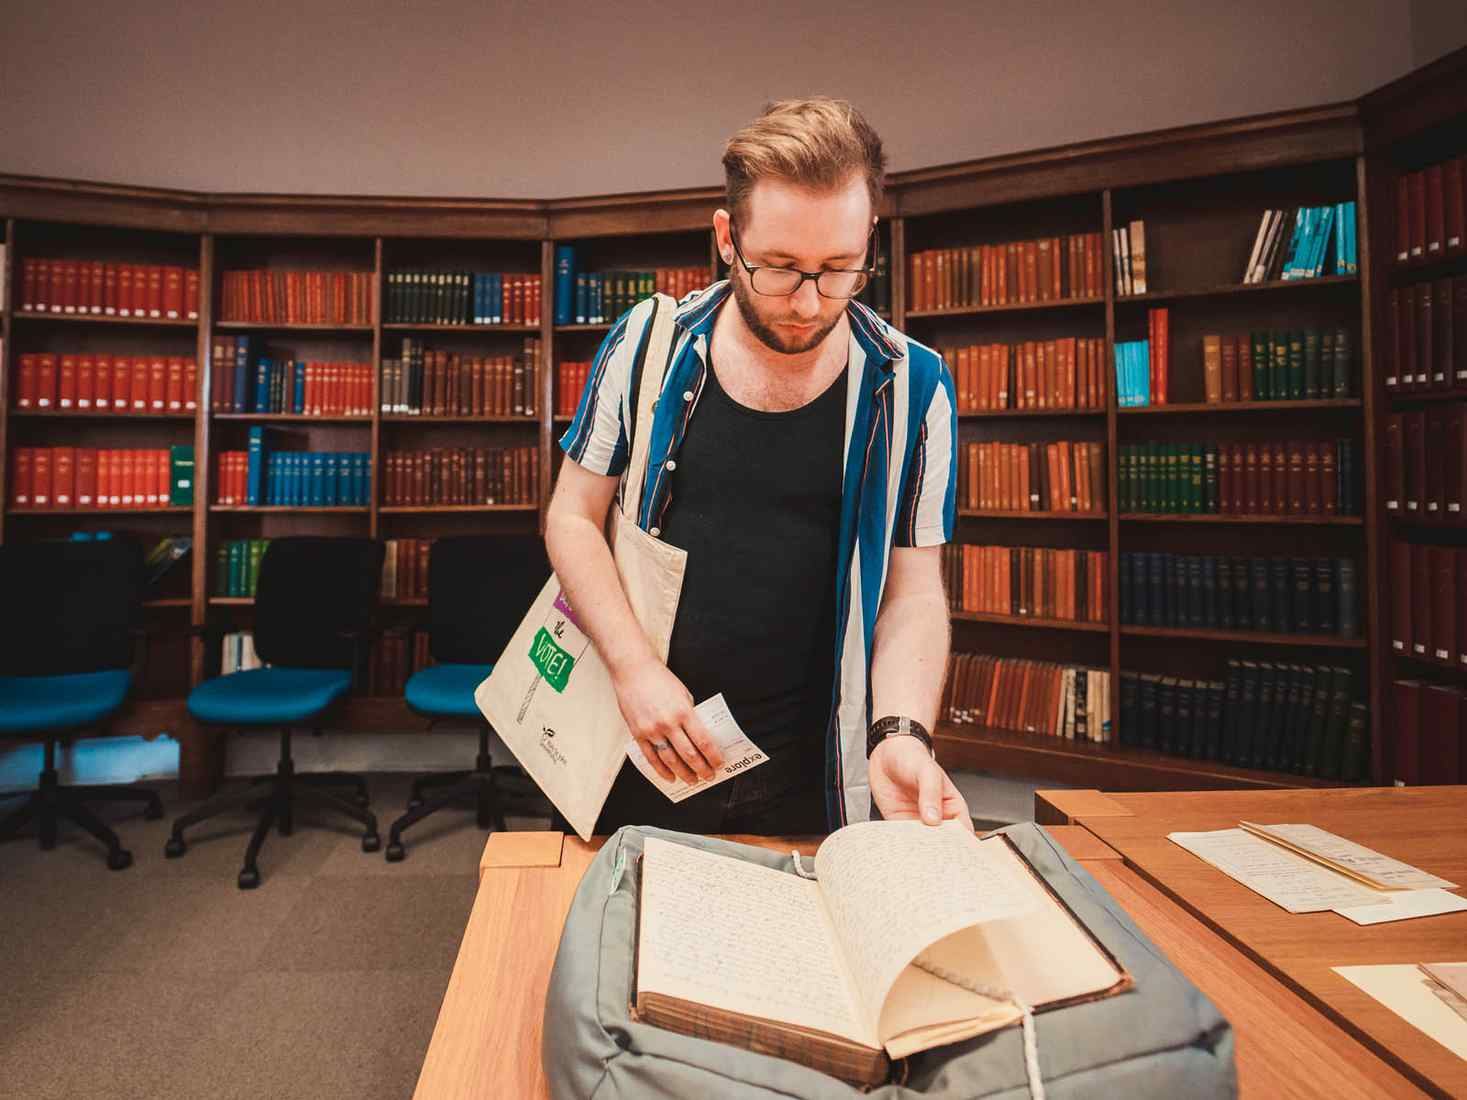 Student looking at historic book in library